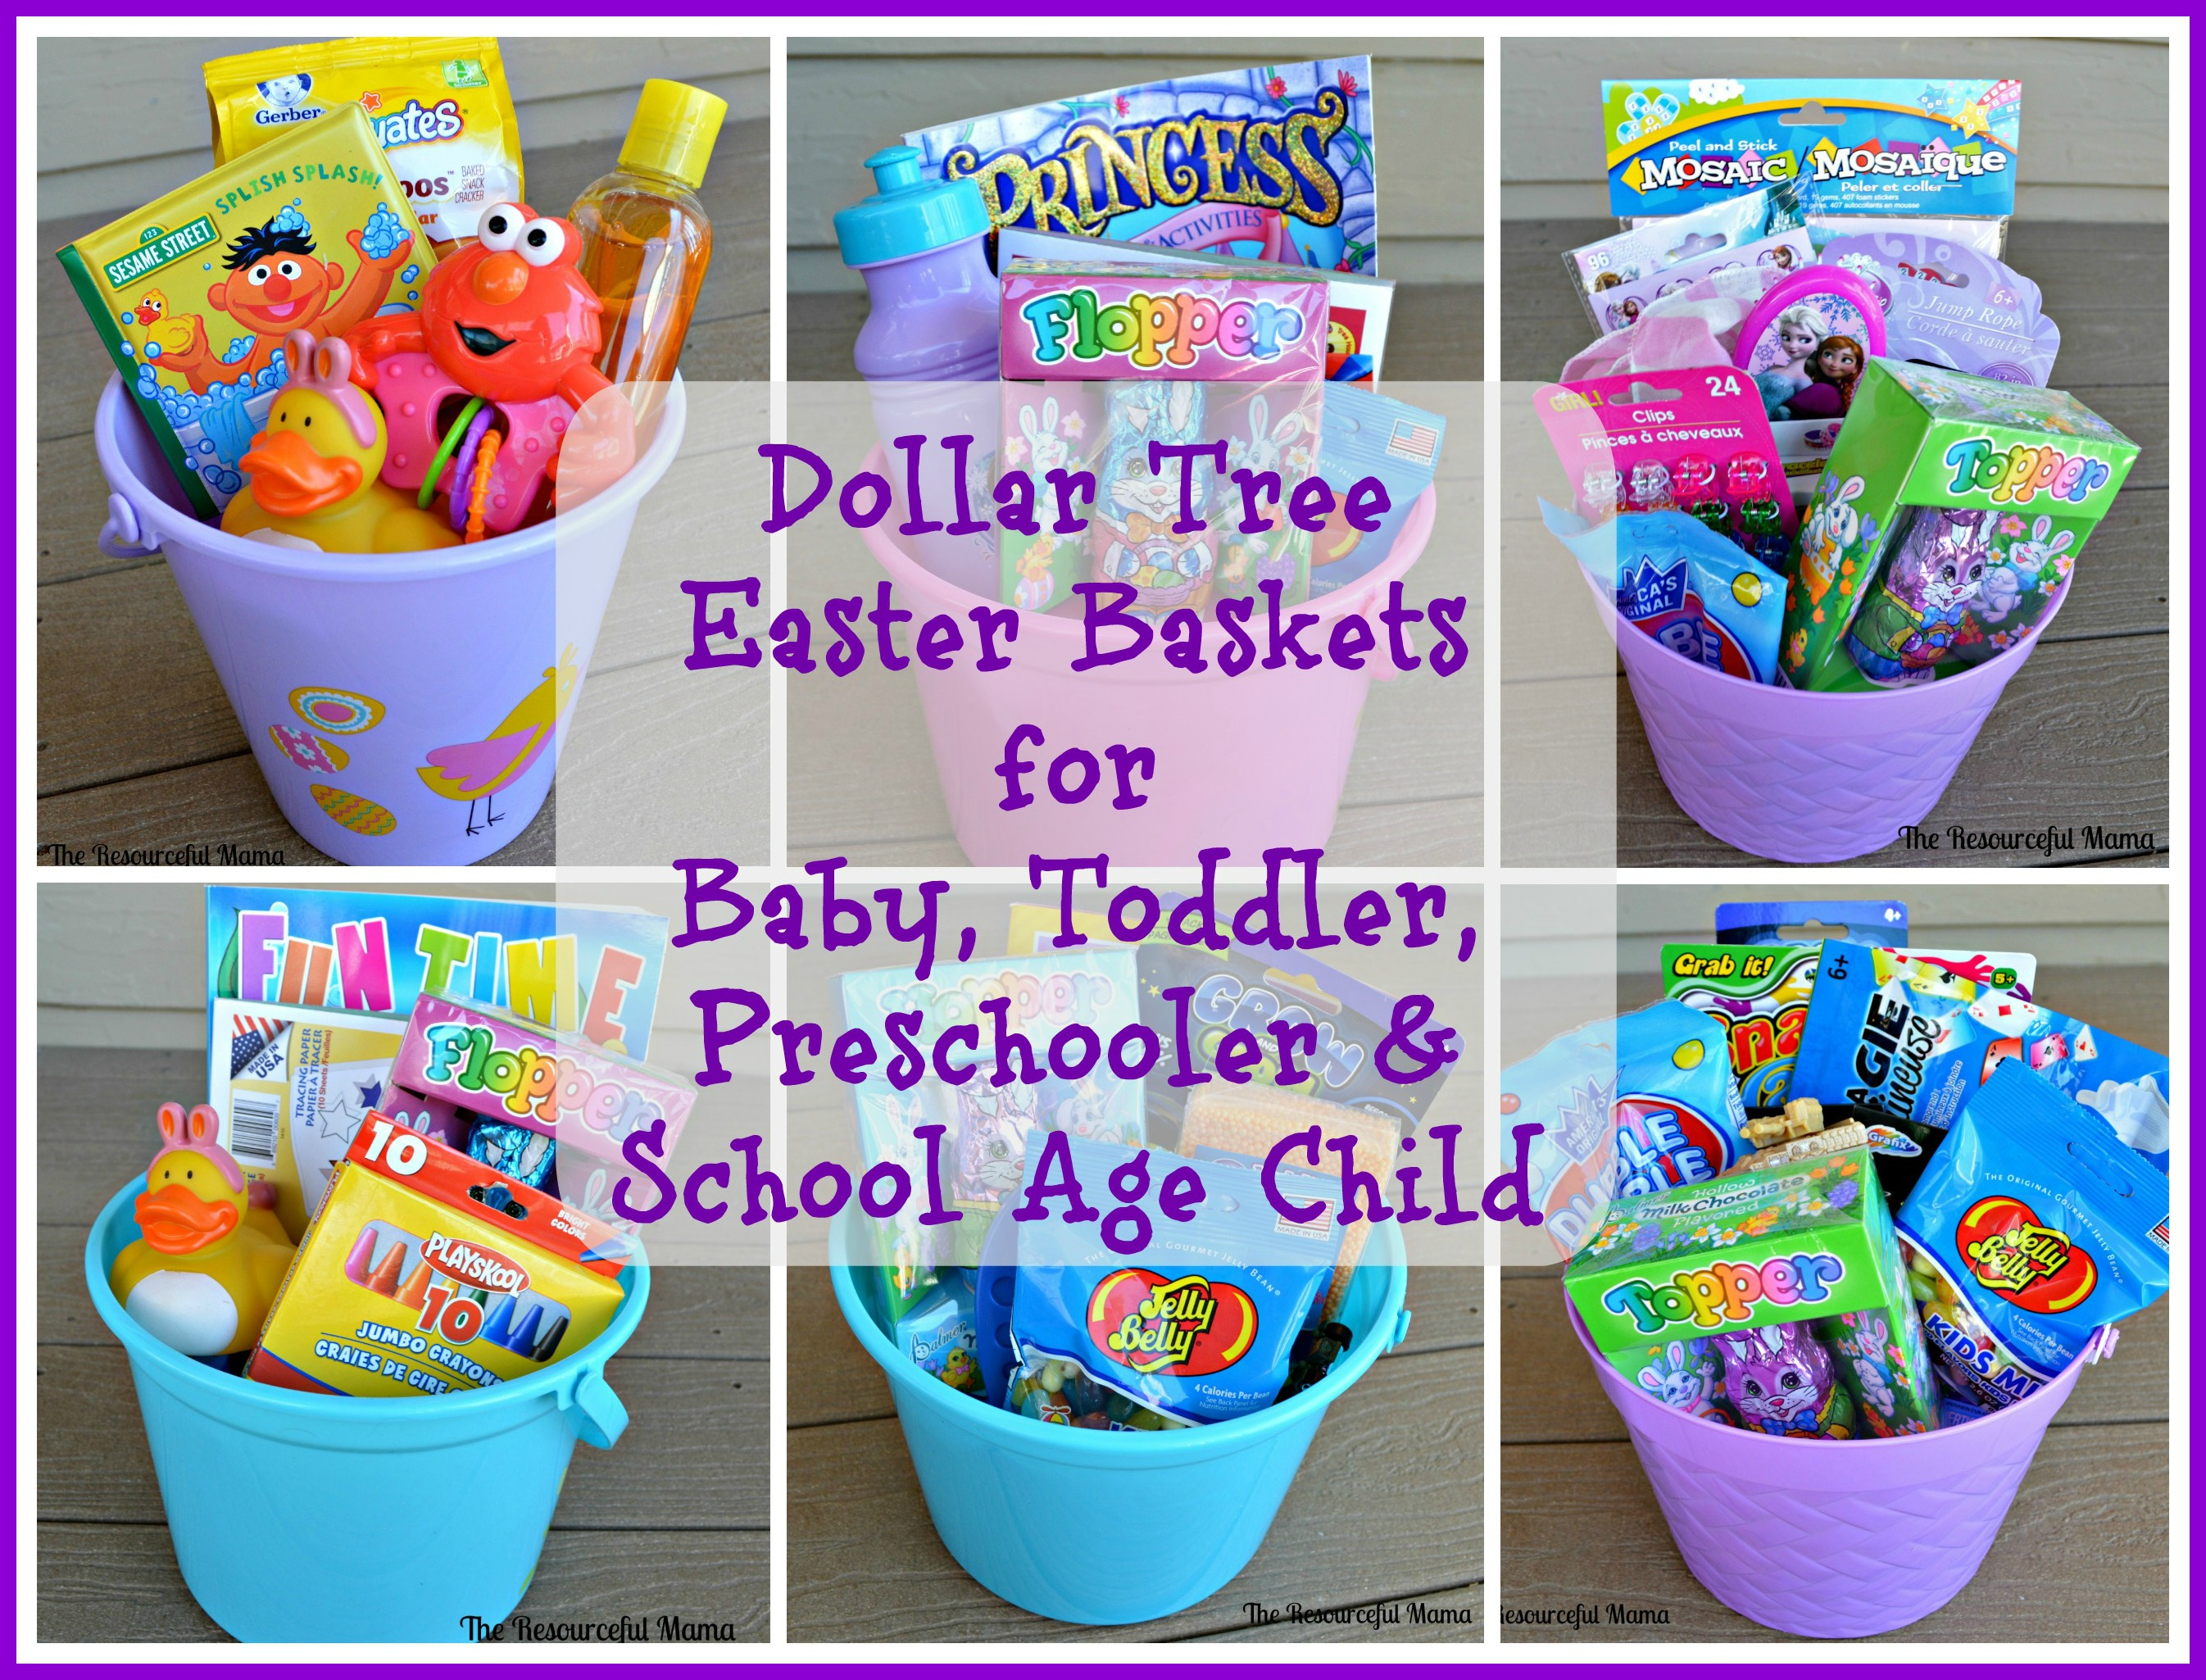 Dollar tree easter baskets the resourceful mama dollar tree easter basket for baby toddler preschooler school age child negle Images